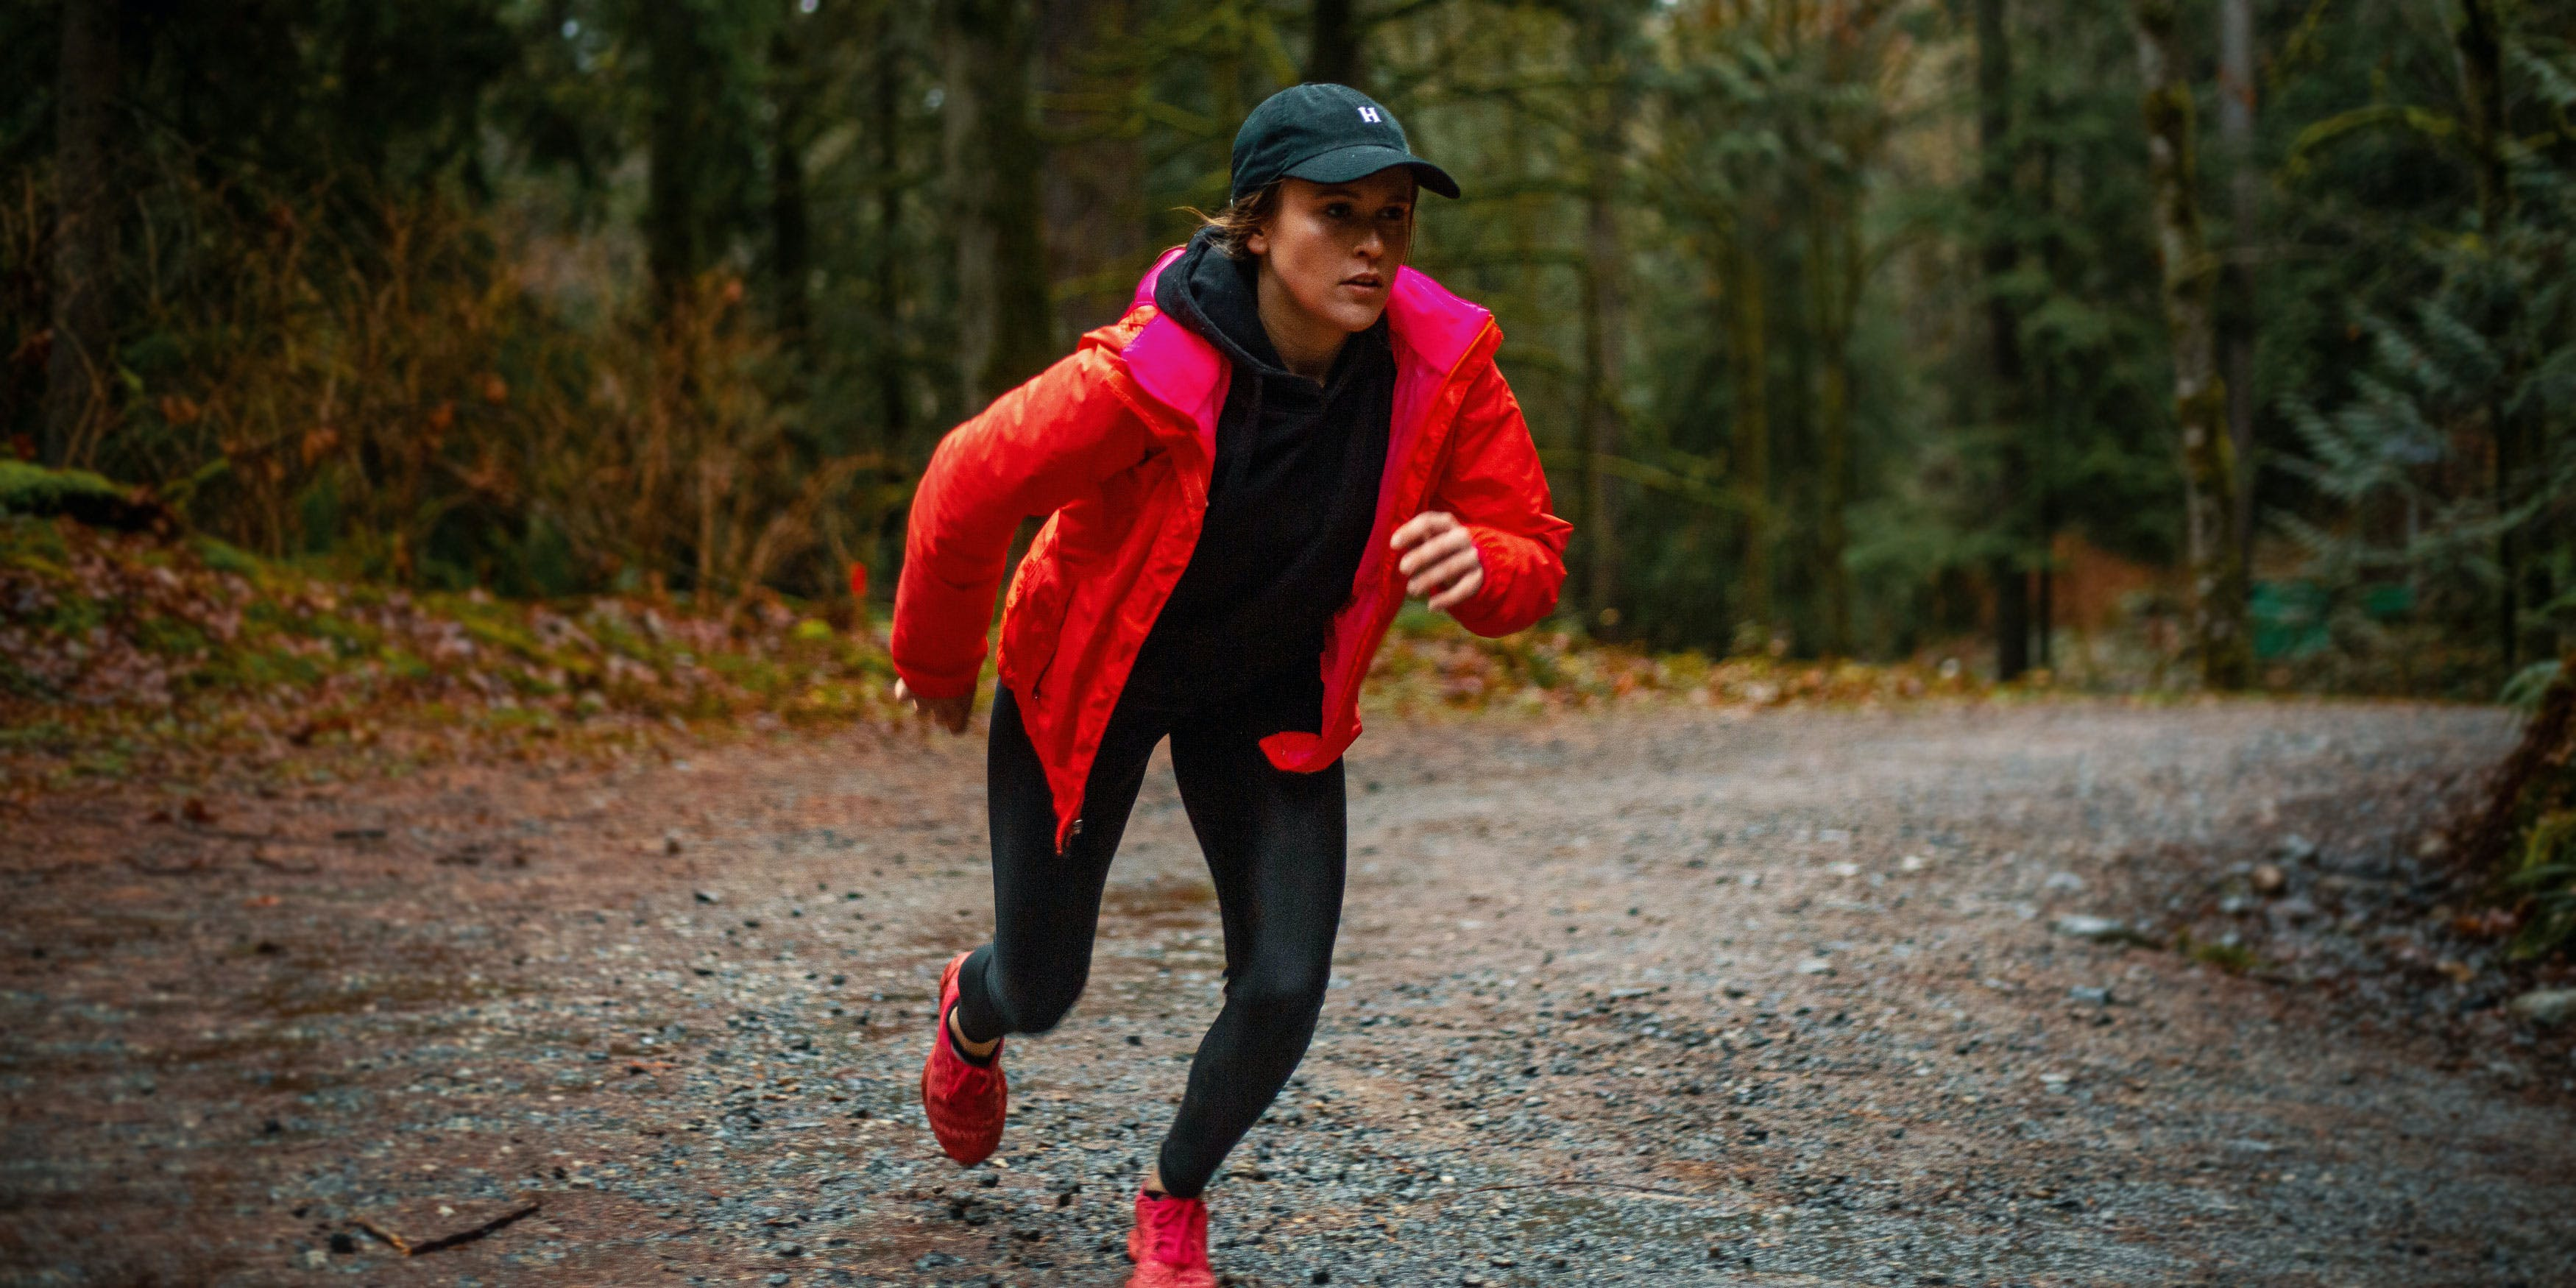 Smoking weed after working out: a woman jogs through the woods